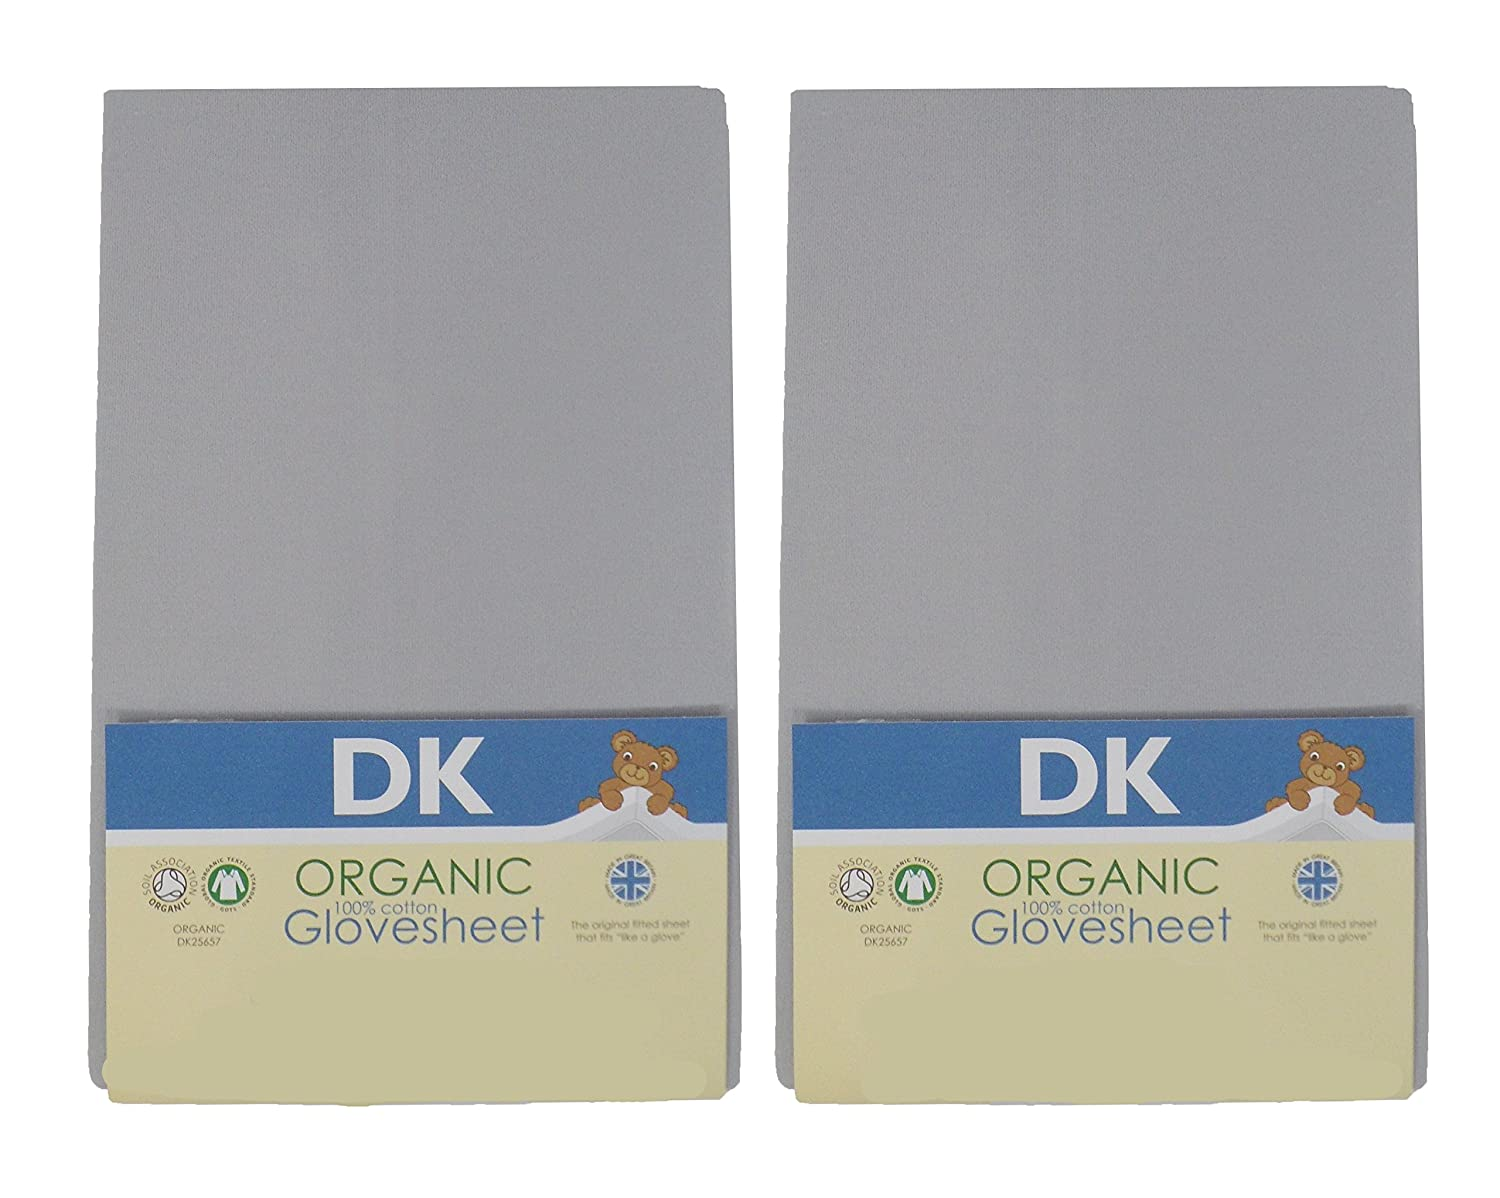 DK Glovesheets Two Dove Grey GOTS Certified 100% Organic Cotton Fitted Moses Sheets to Fit Mattress Size 67 x 30 cm KATIES PLAYPEN® / BABY BEST BUYS